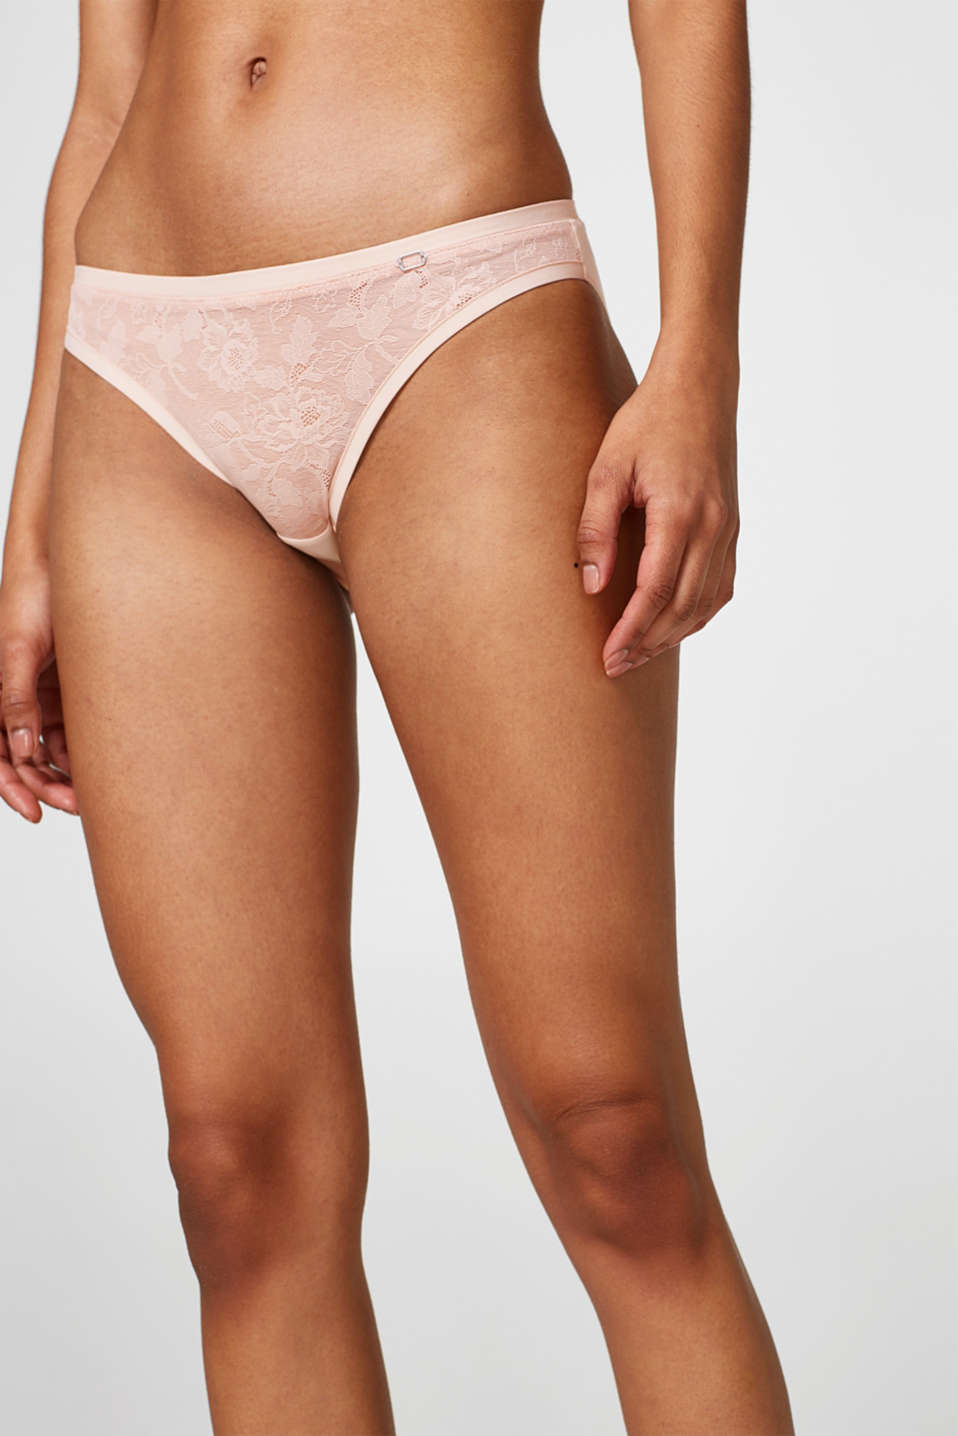 Esprit - Hipster briefs in lace